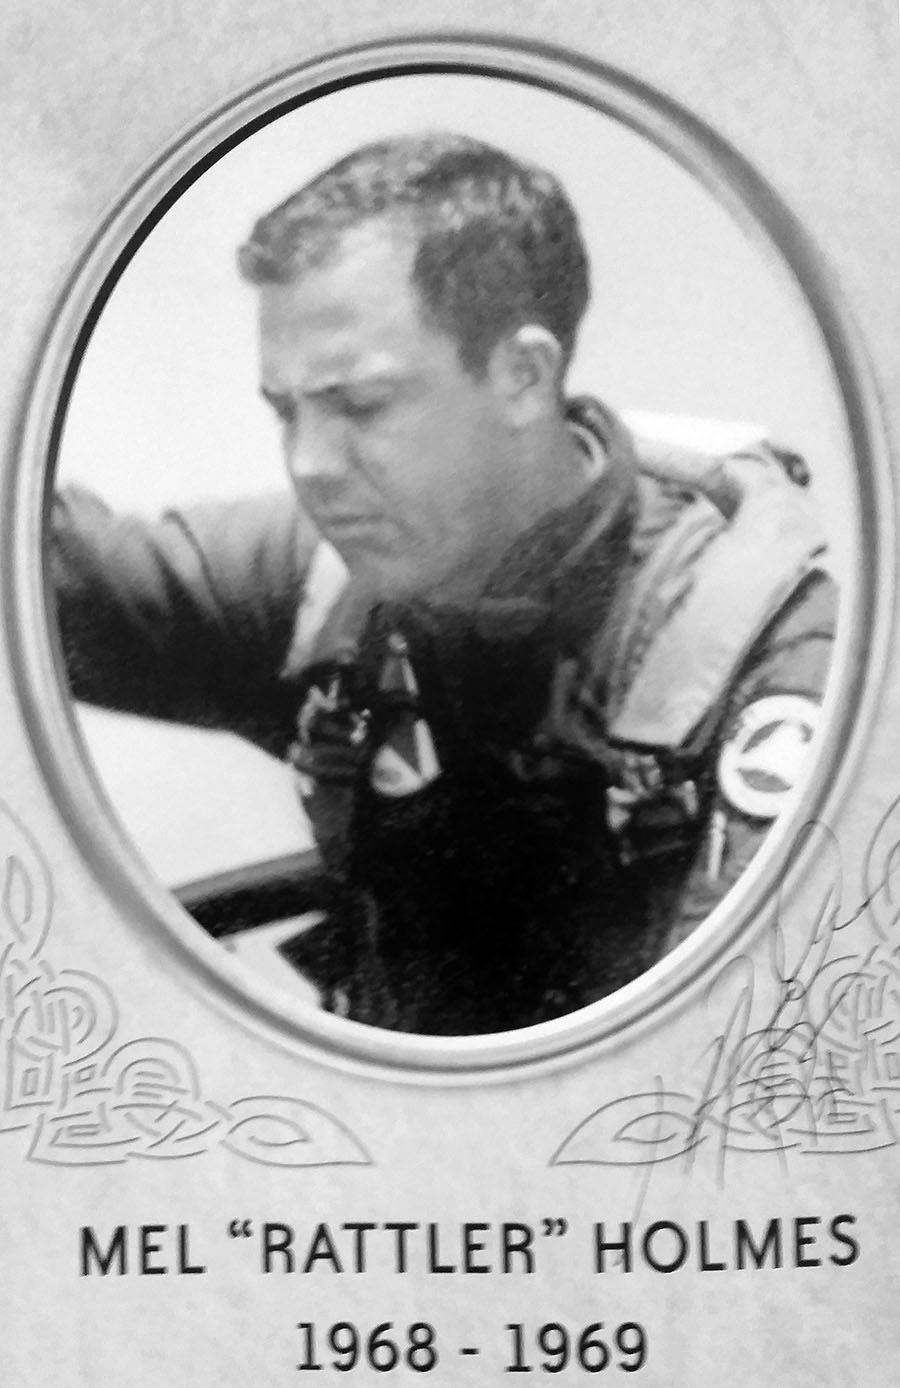 Holmes was head of the air-to-air combat department at Top Gun until 1970.